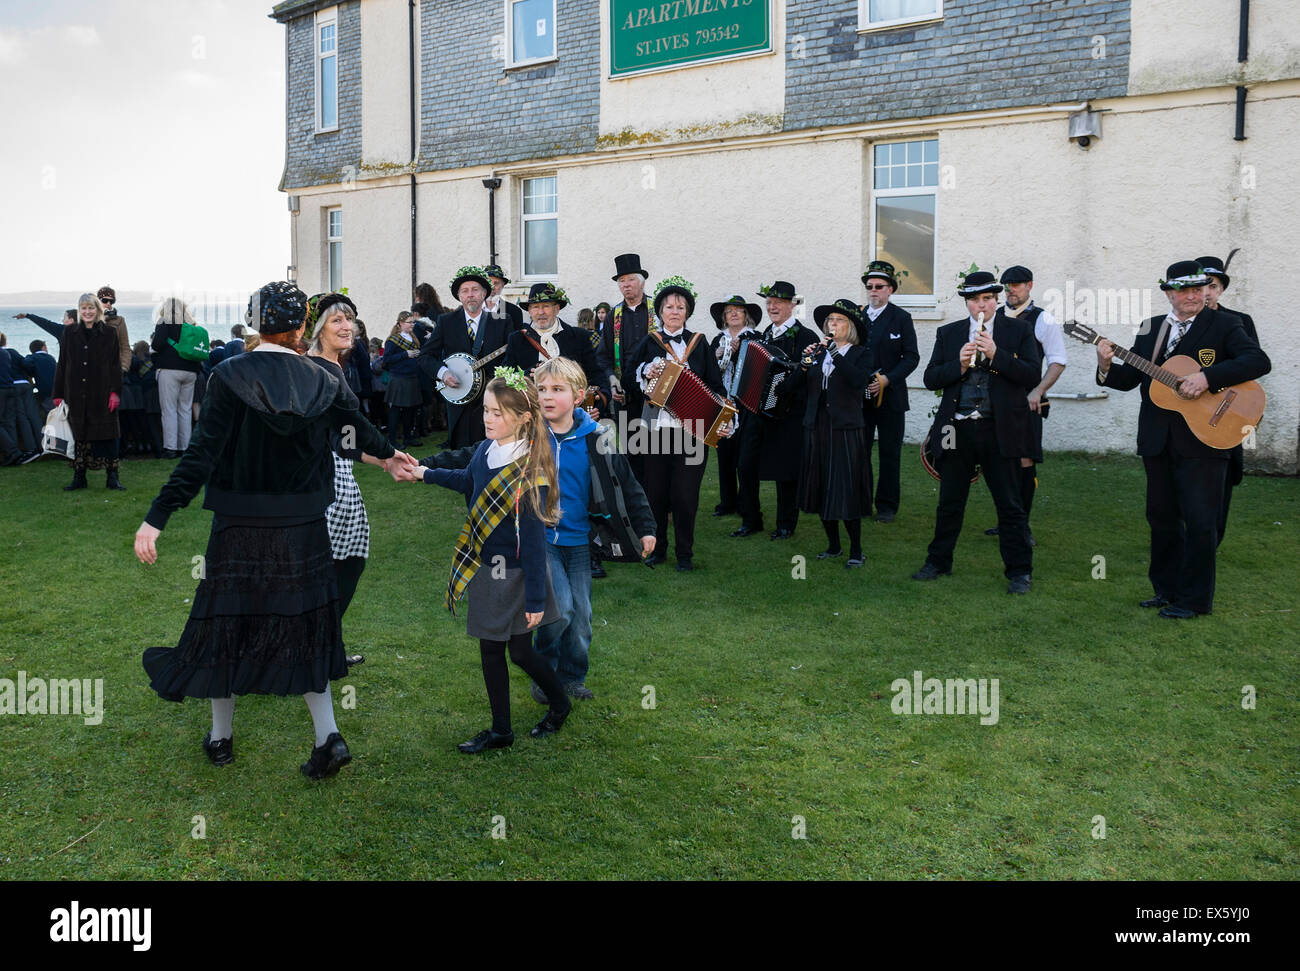 A band playing and children dancing during Feast day celebrations in St.Ives, Cornwall, England, UK - Stock Image